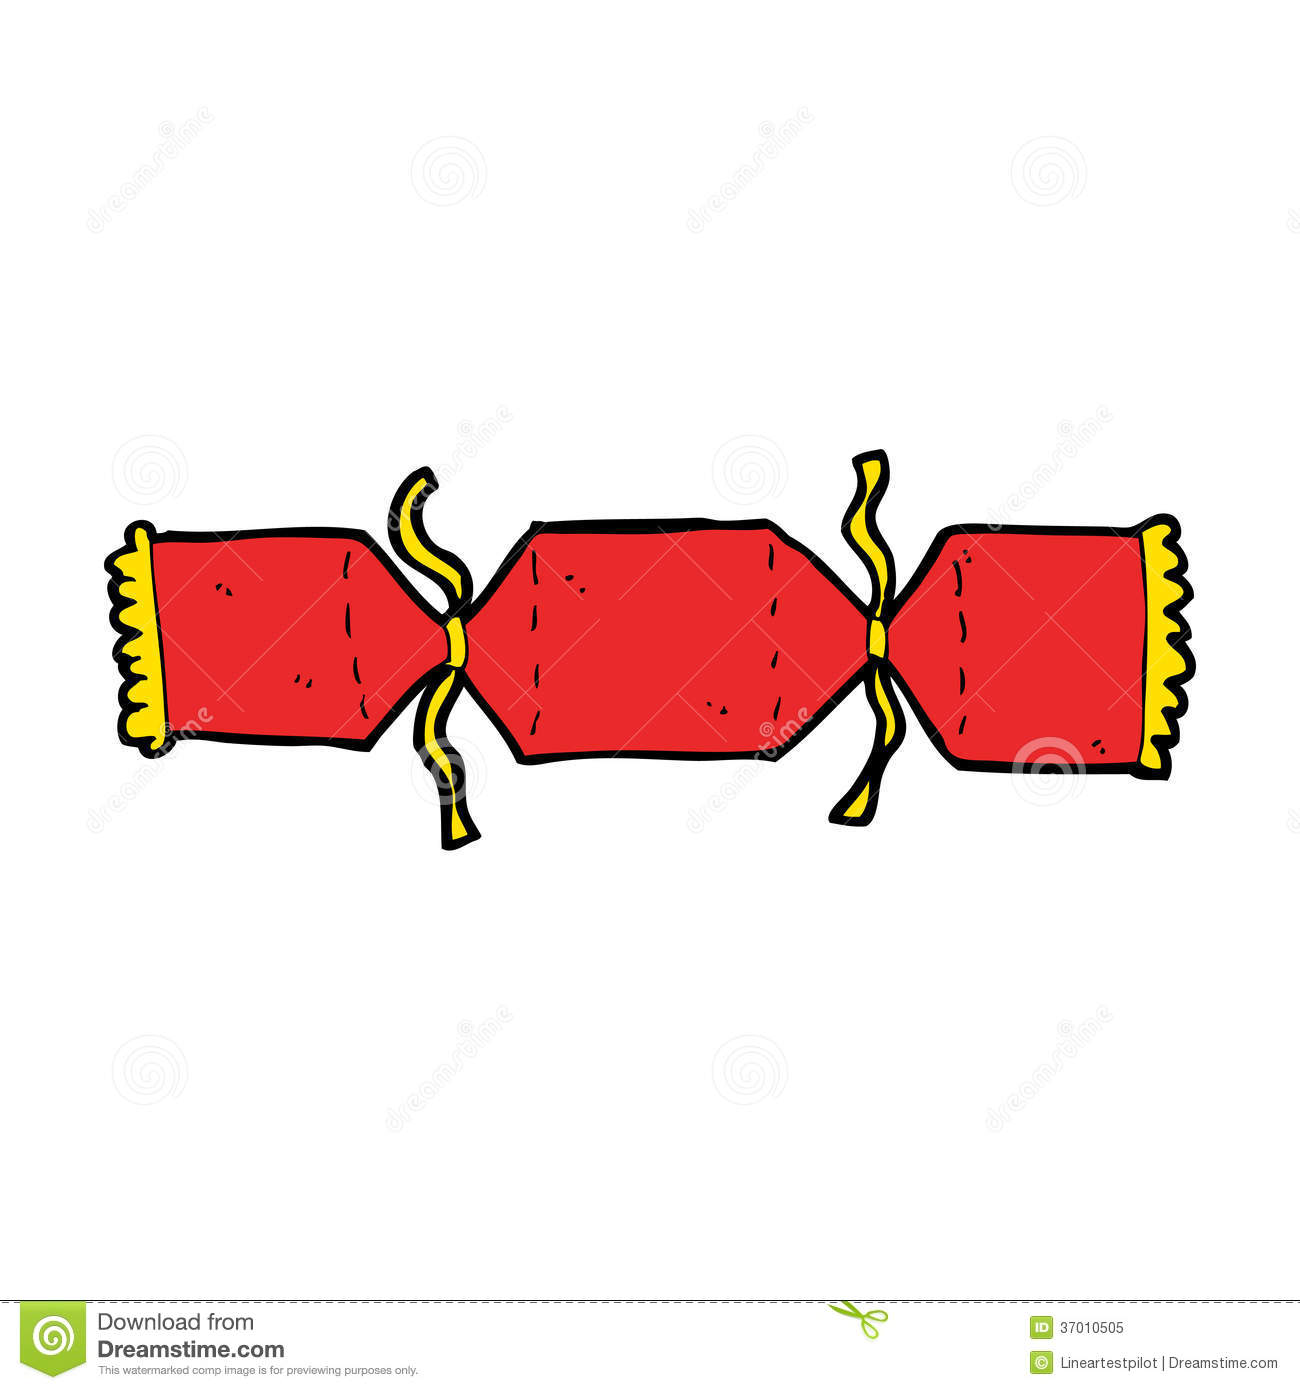 Big sale banner design. Christmas cracker vector | free download.